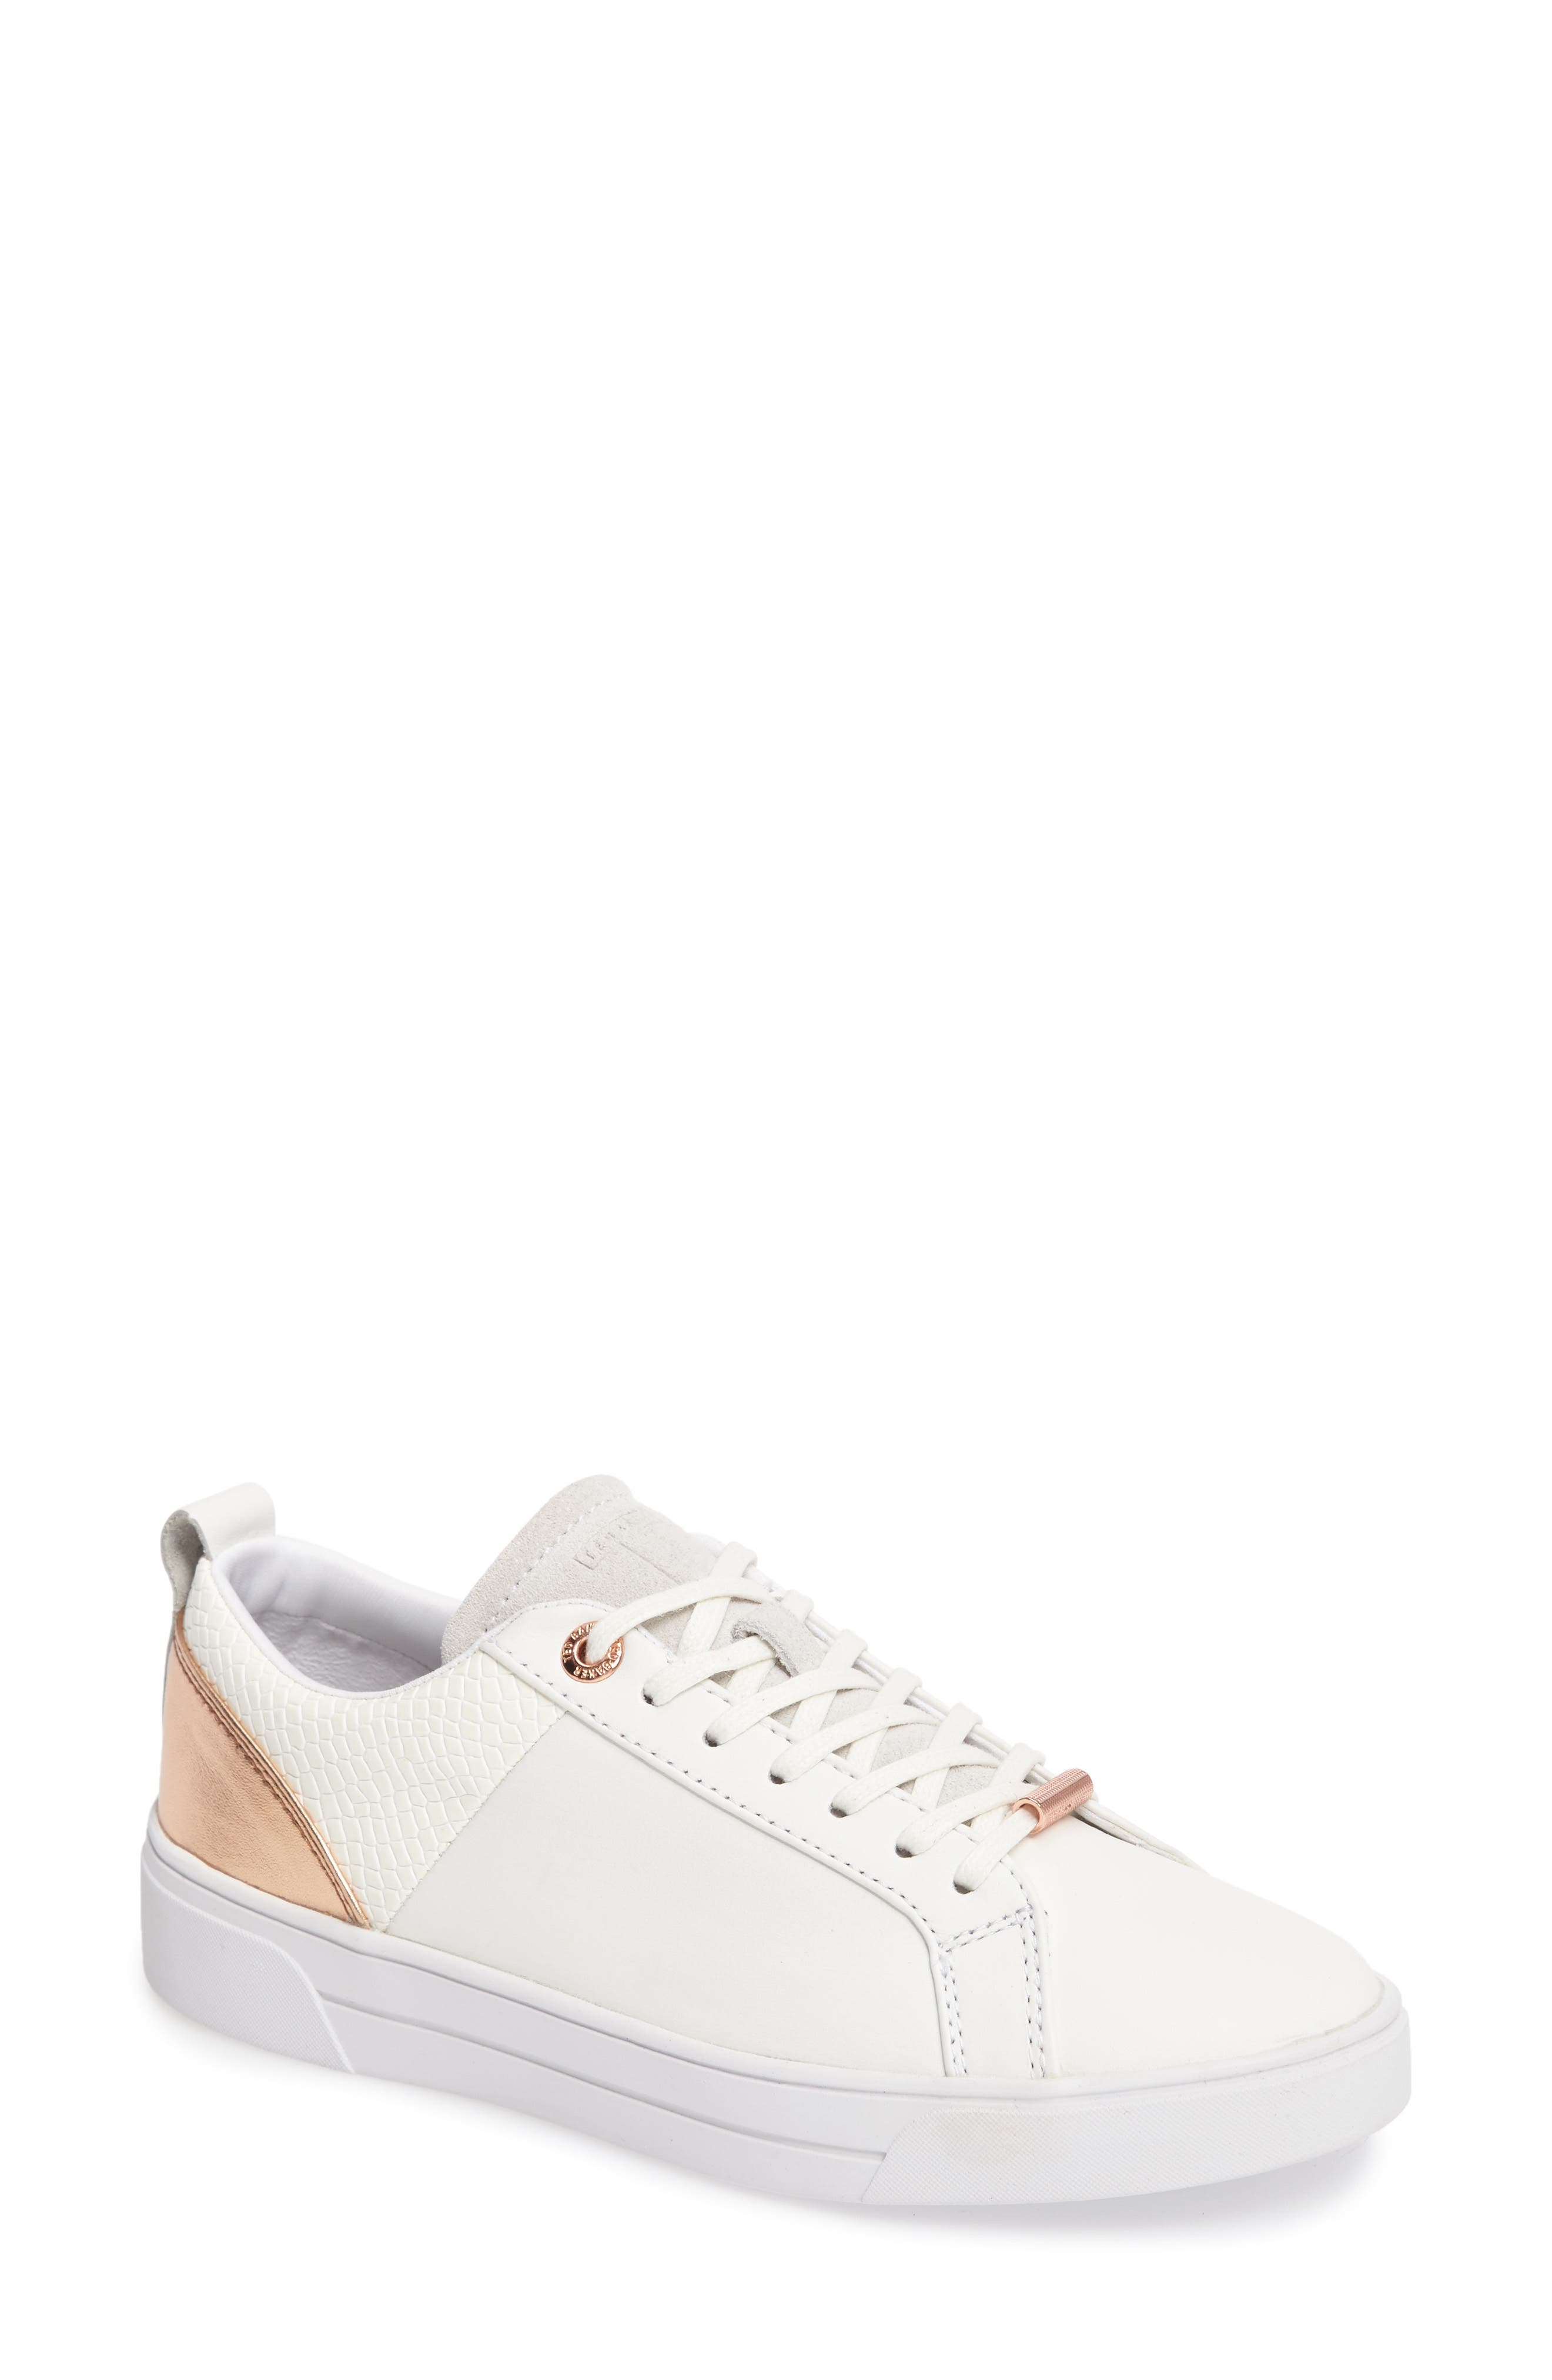 Kulei Lace-Up Sneaker,                         Main,                         color,